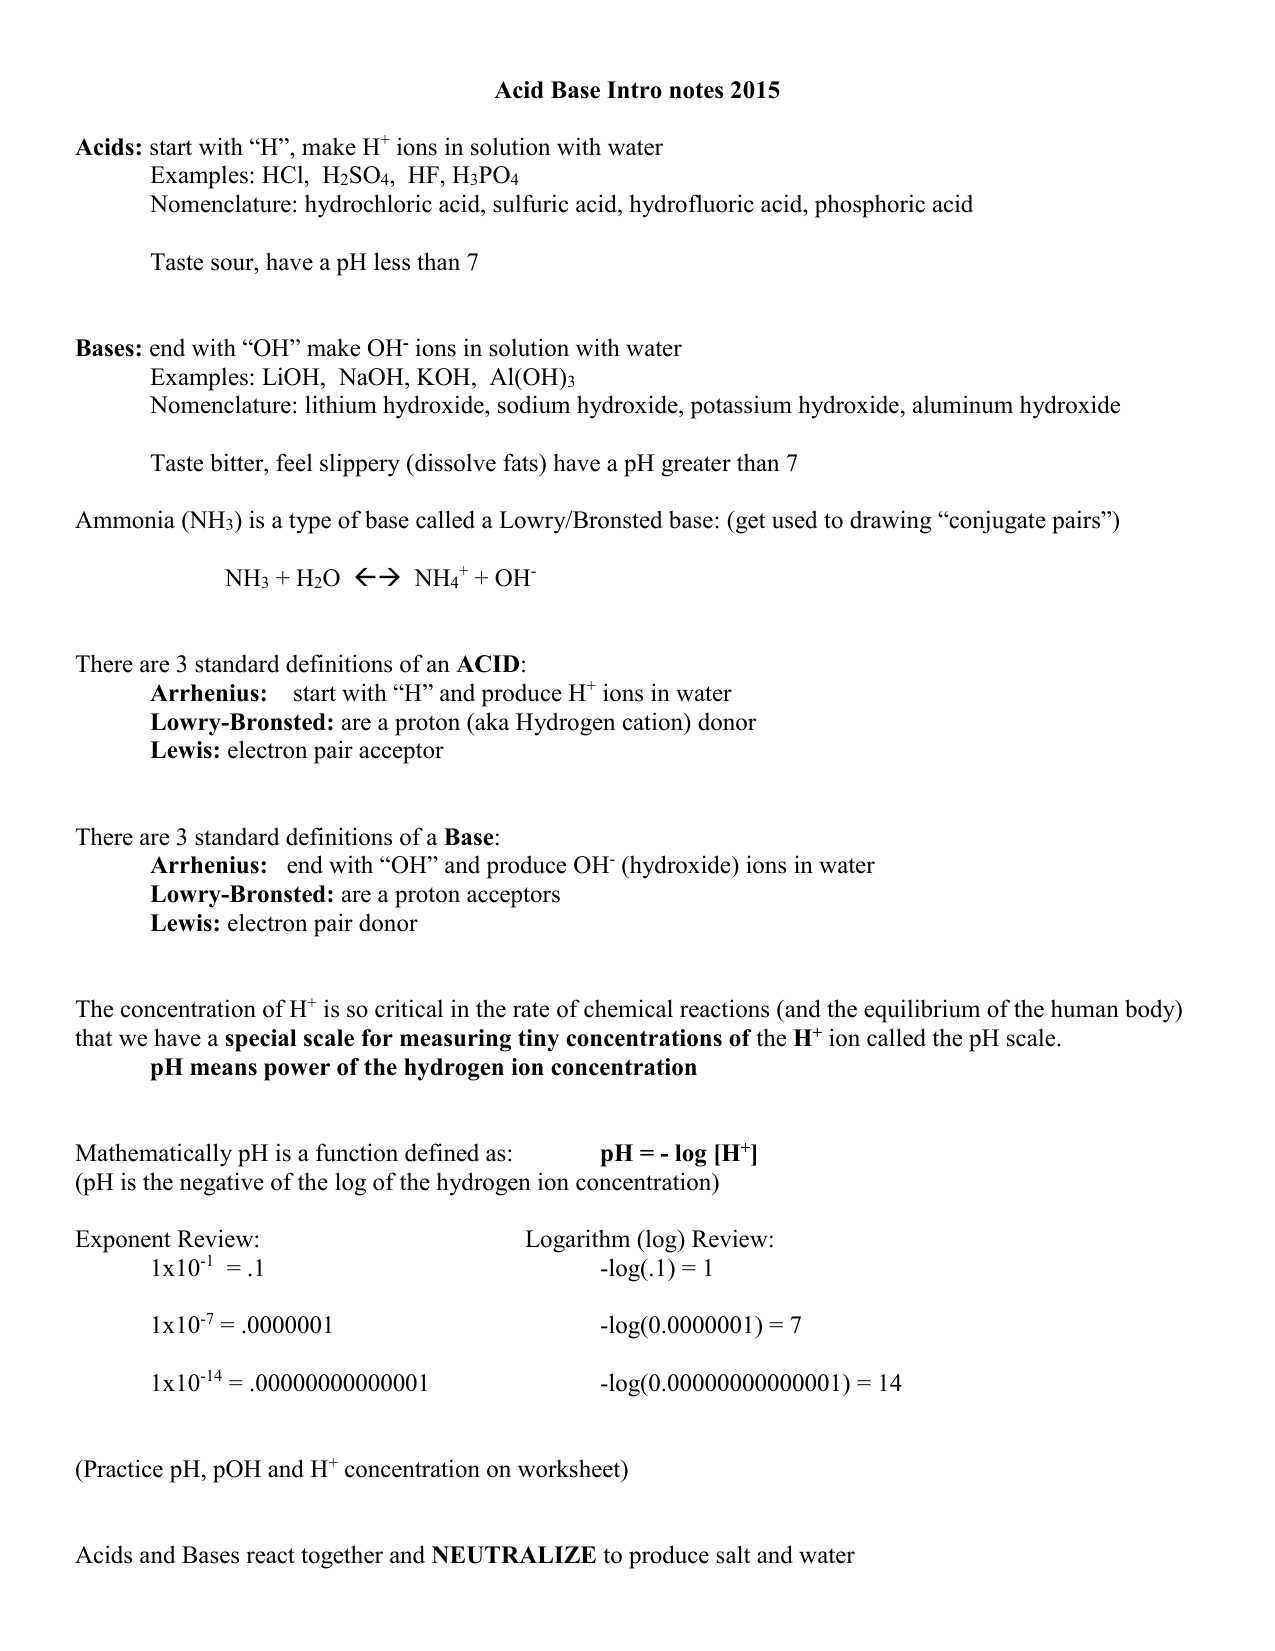 Worksheet Acid Base Neutralization Worksheet Worksheet Fun